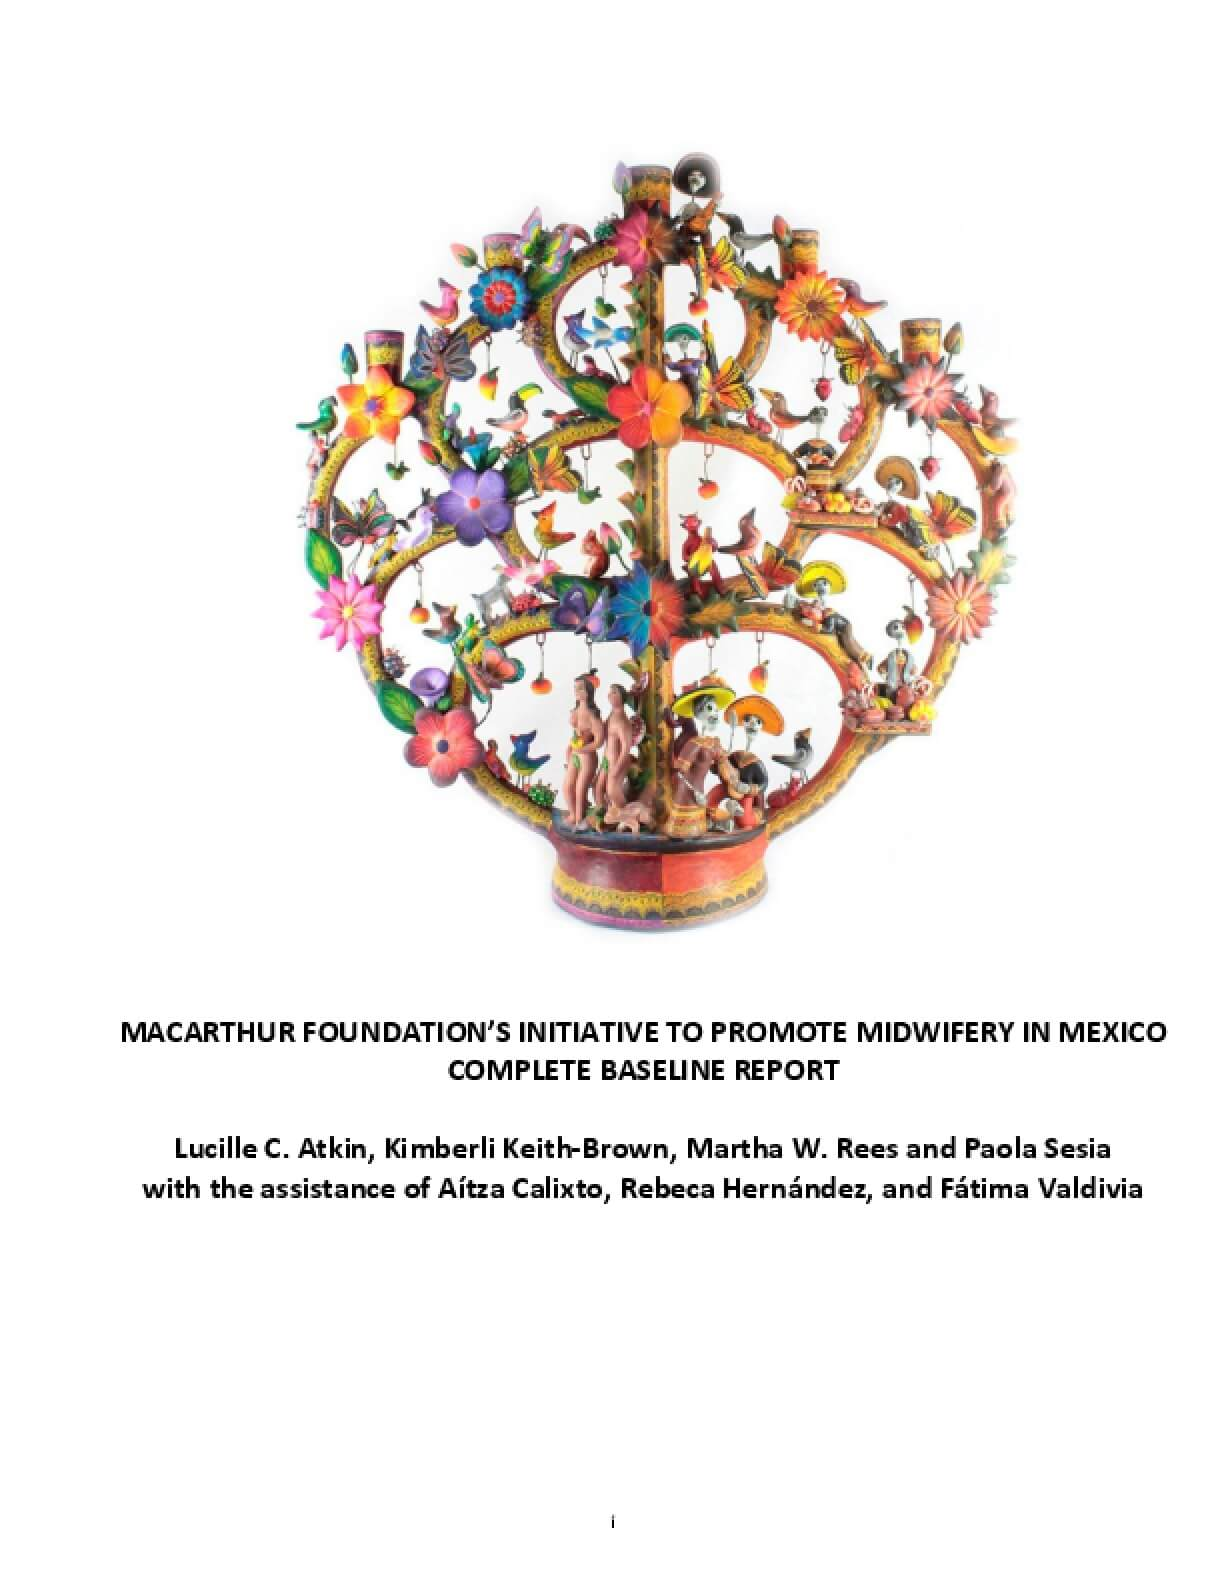 MacArthur Foundation's Initiative to Promote Midwifery in Mexico, Complete Baseline Report